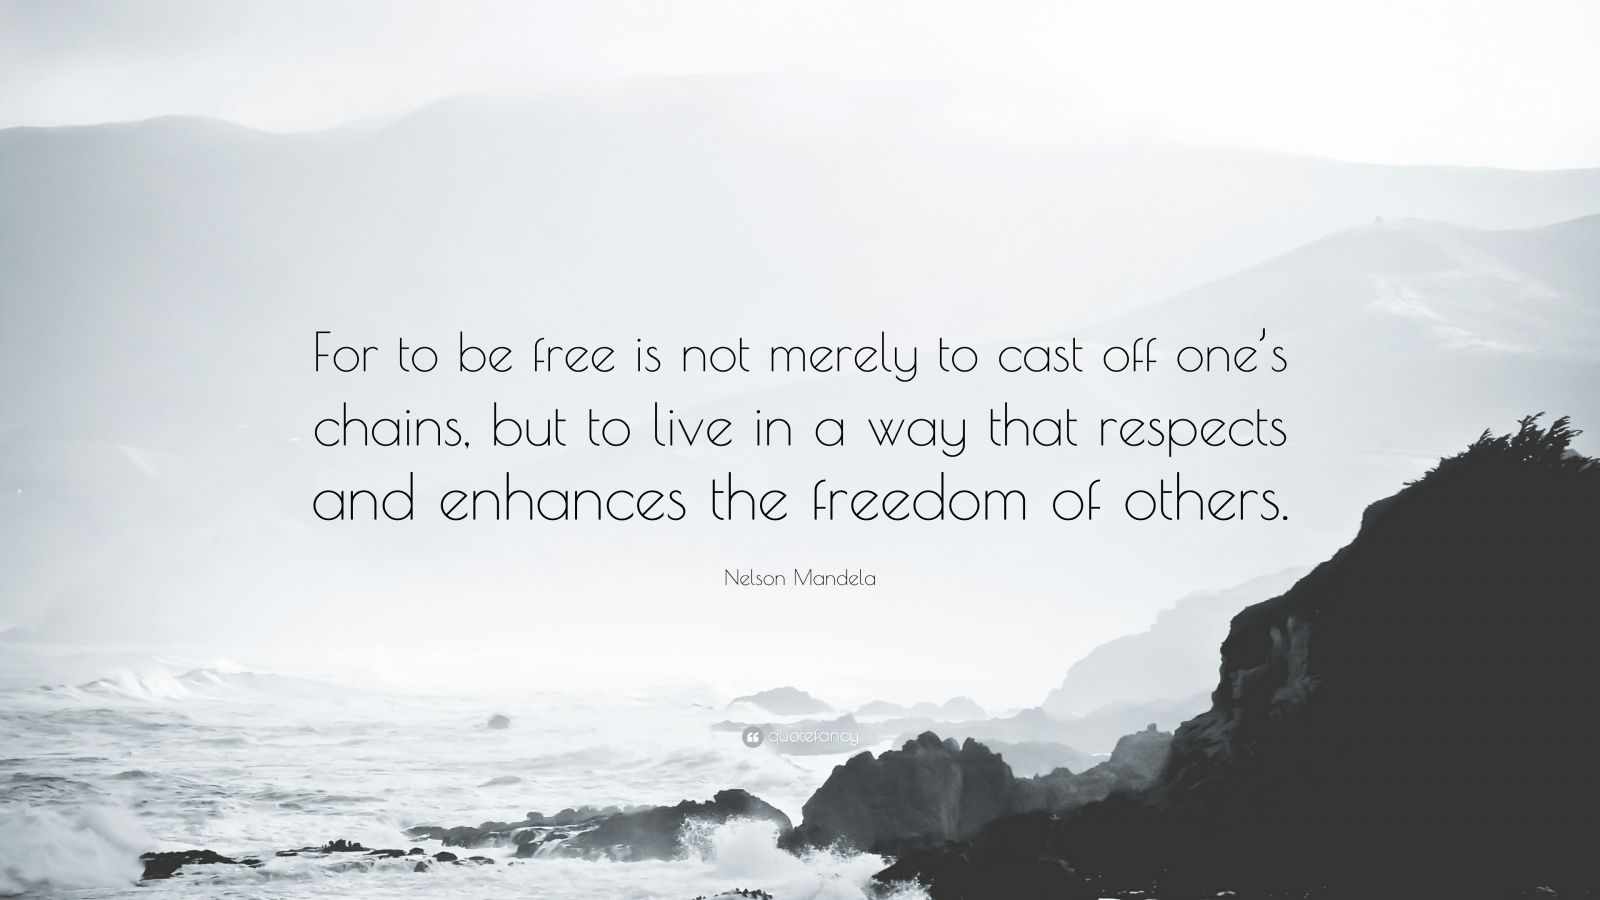 """Nelson Mandela Quote: """"For to be free is not merely to cast off one's chains, but to live in a way that respects and enhances the freedom of others."""""""